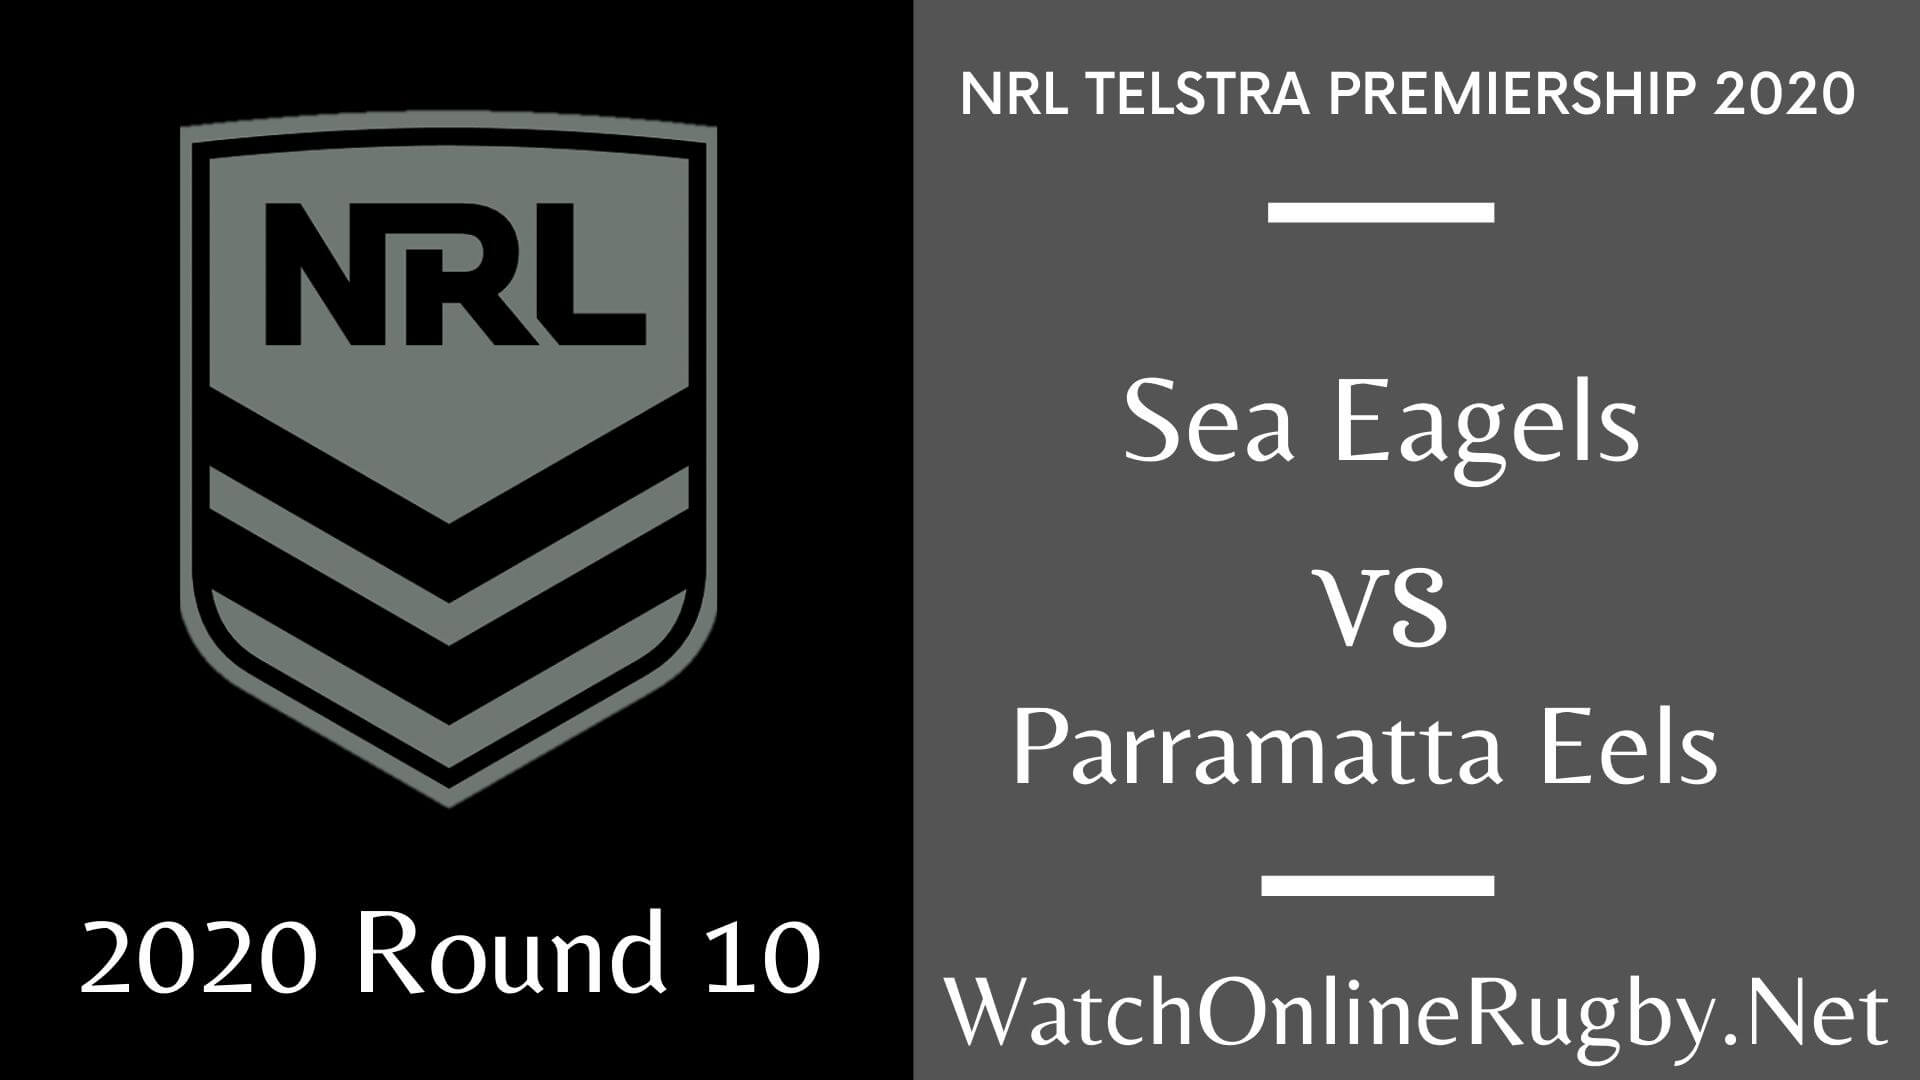 Sea Eagles Vs Eels Highlights 2020 Round 10 Nrl Rugby